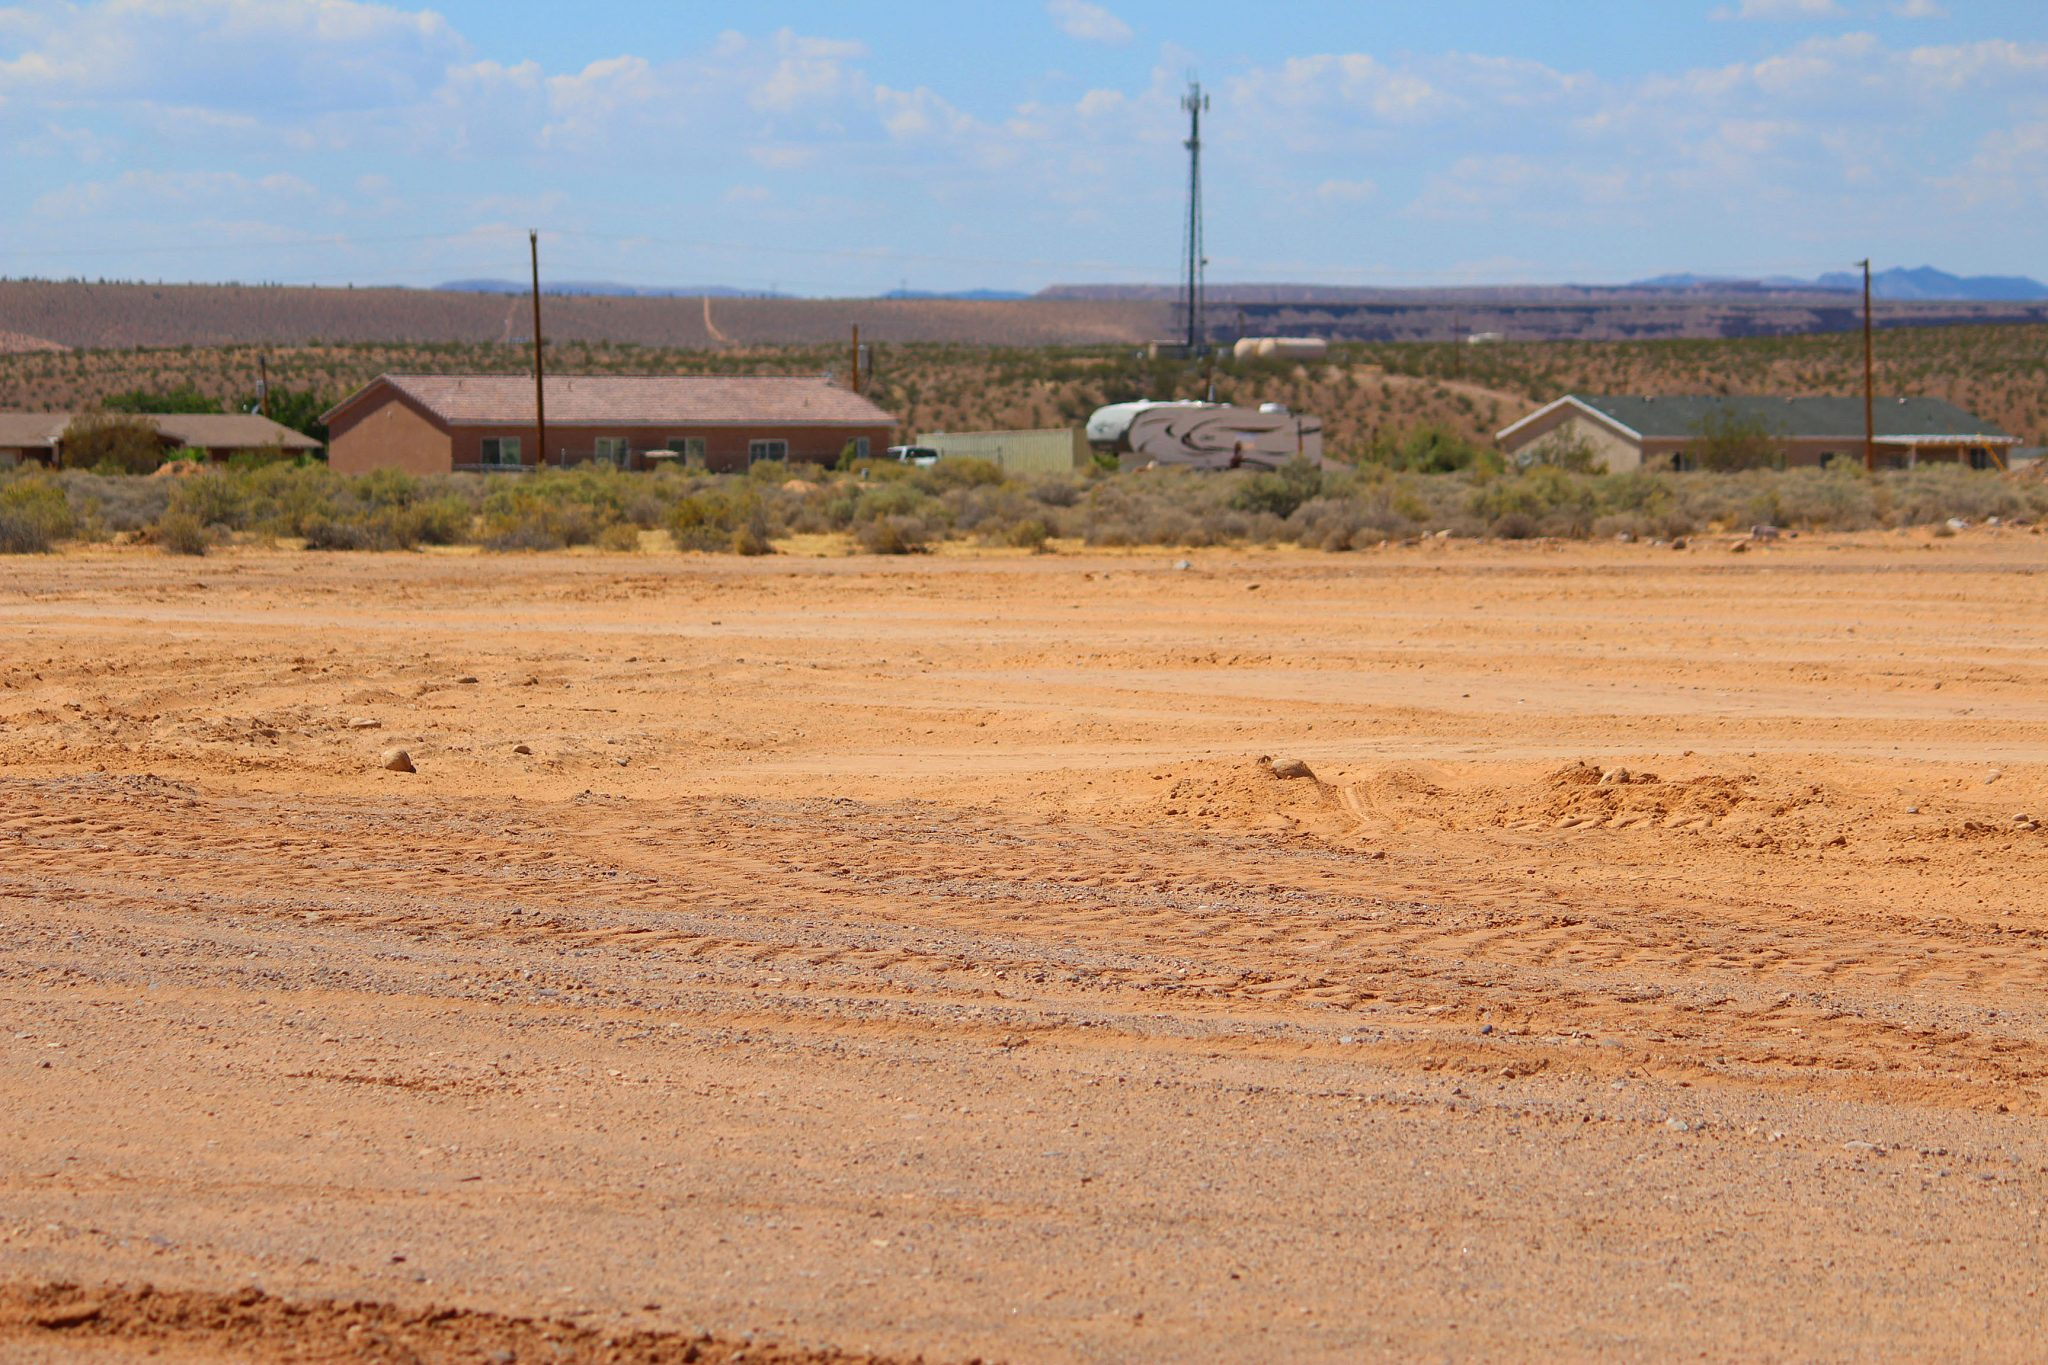 Desert Spring residents request rezoning